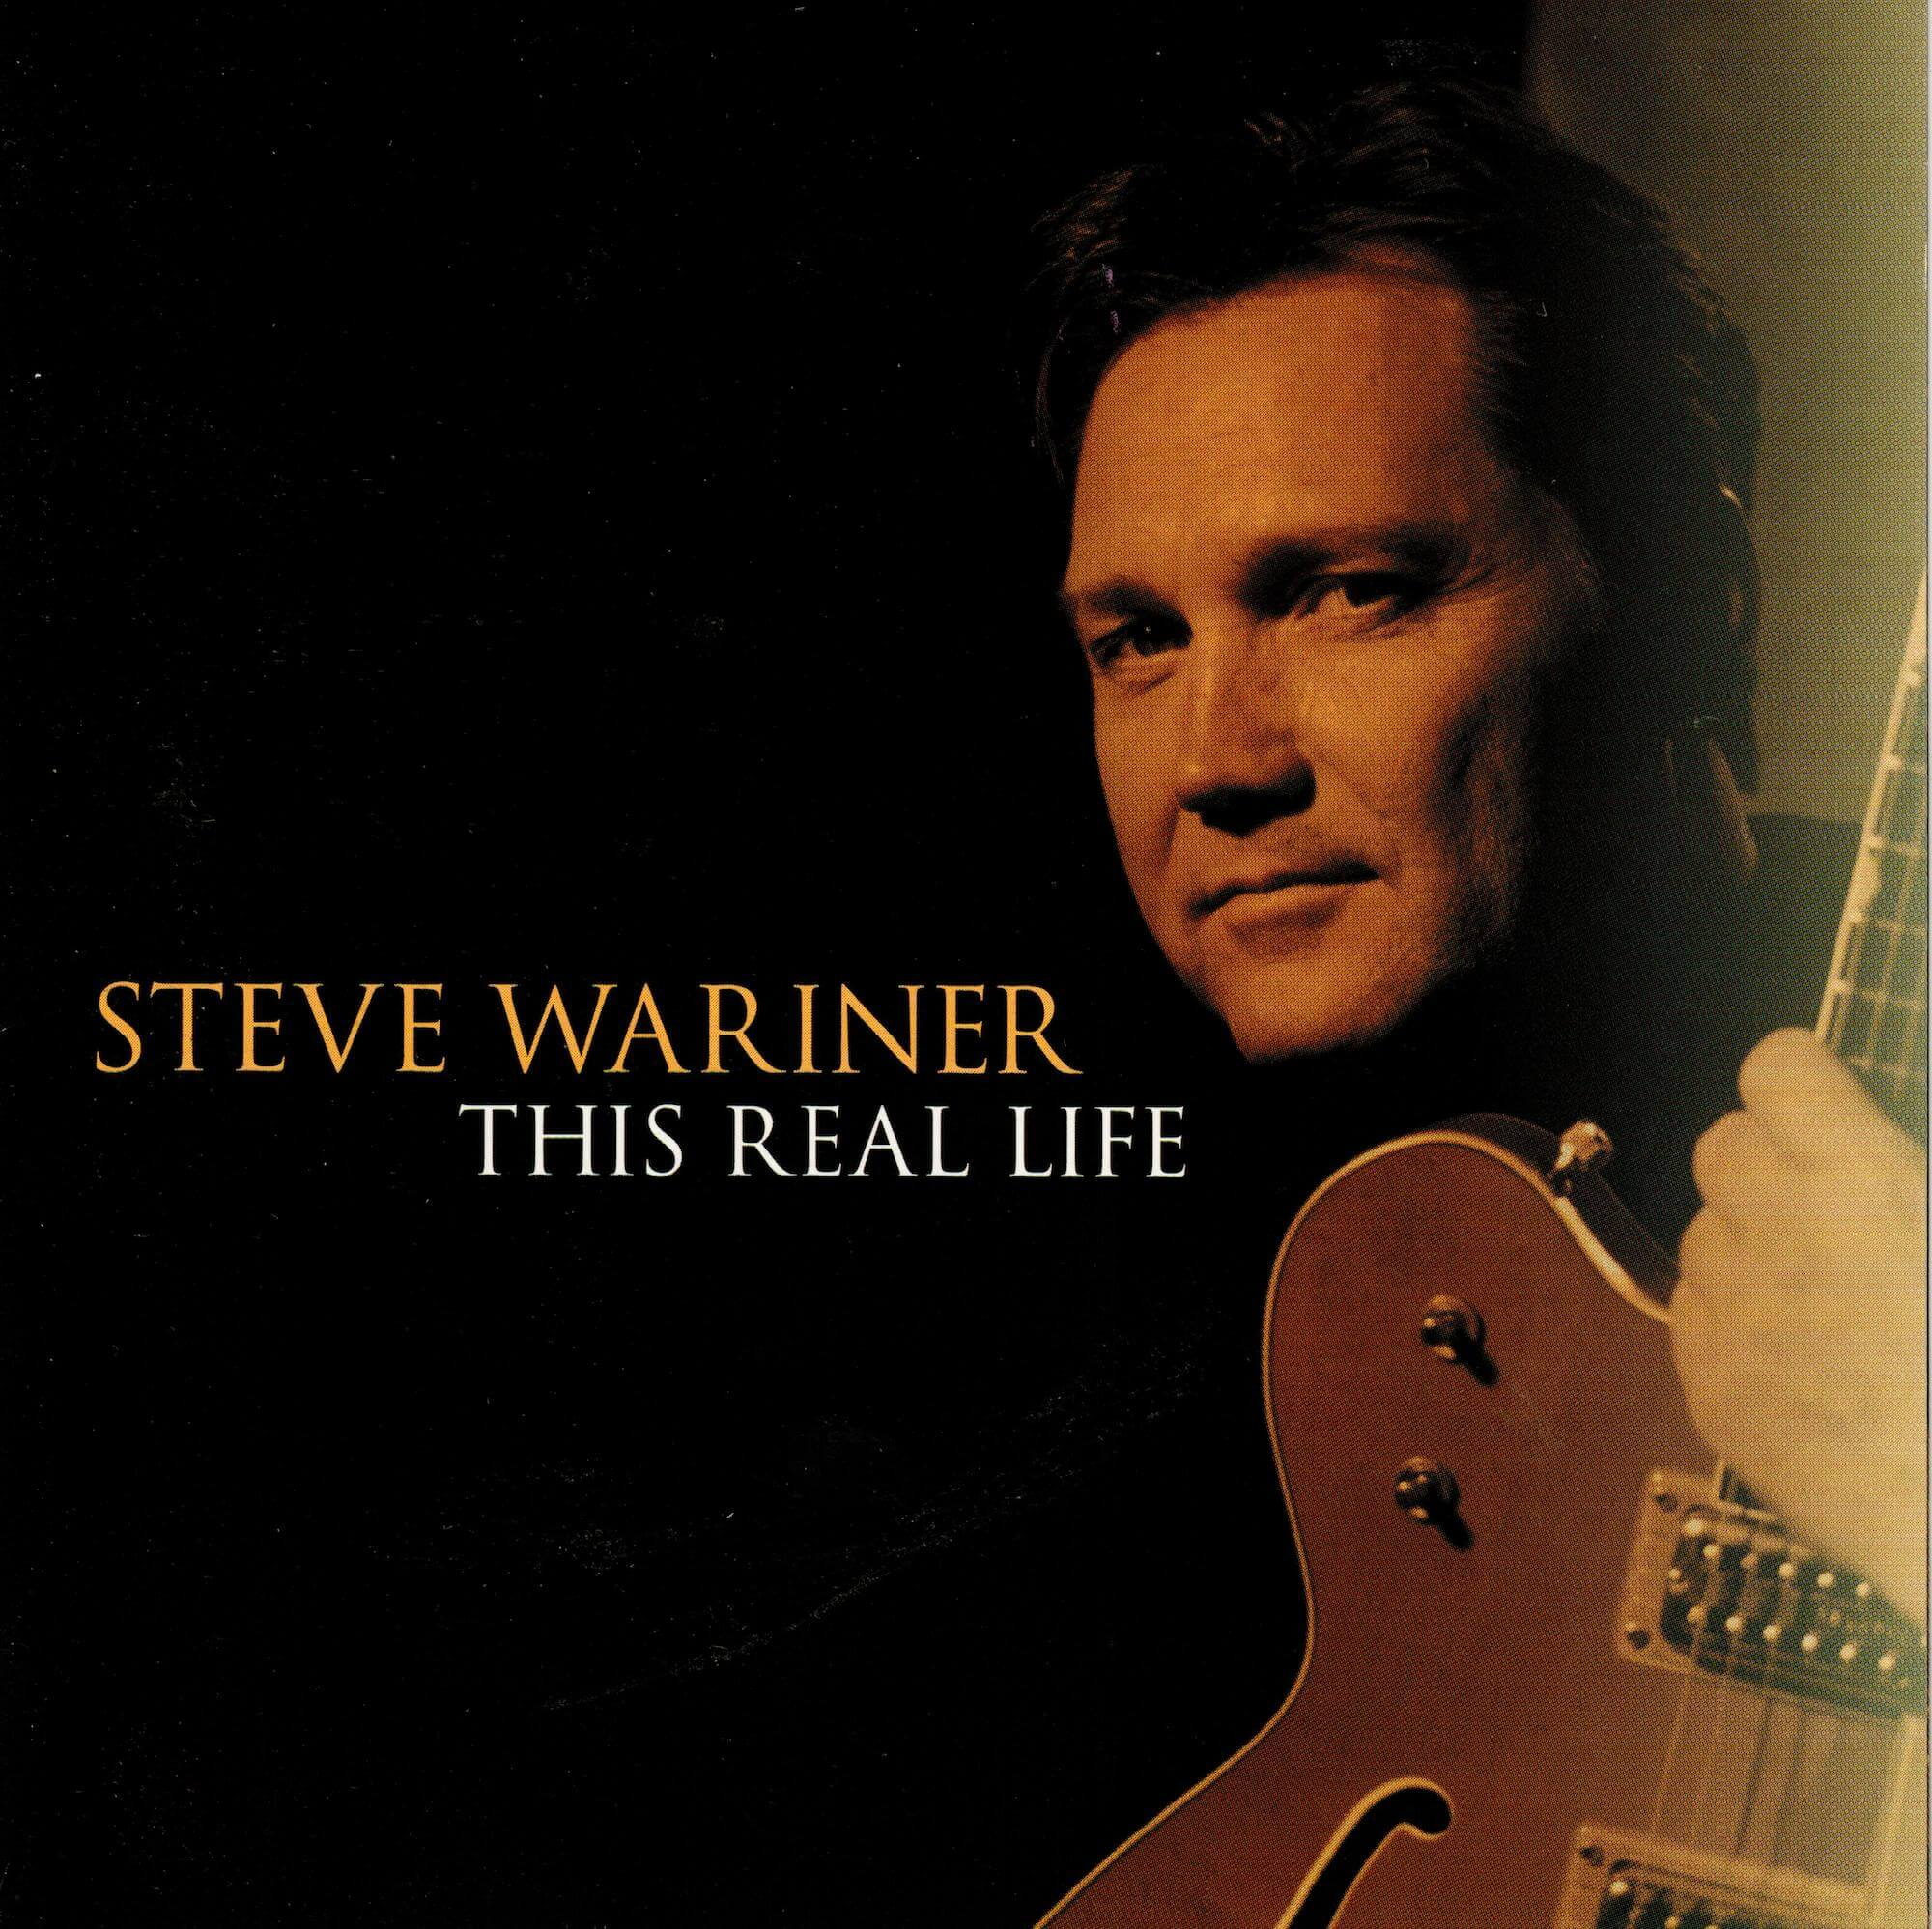 This Real Life - Steve Wariner .jpeg